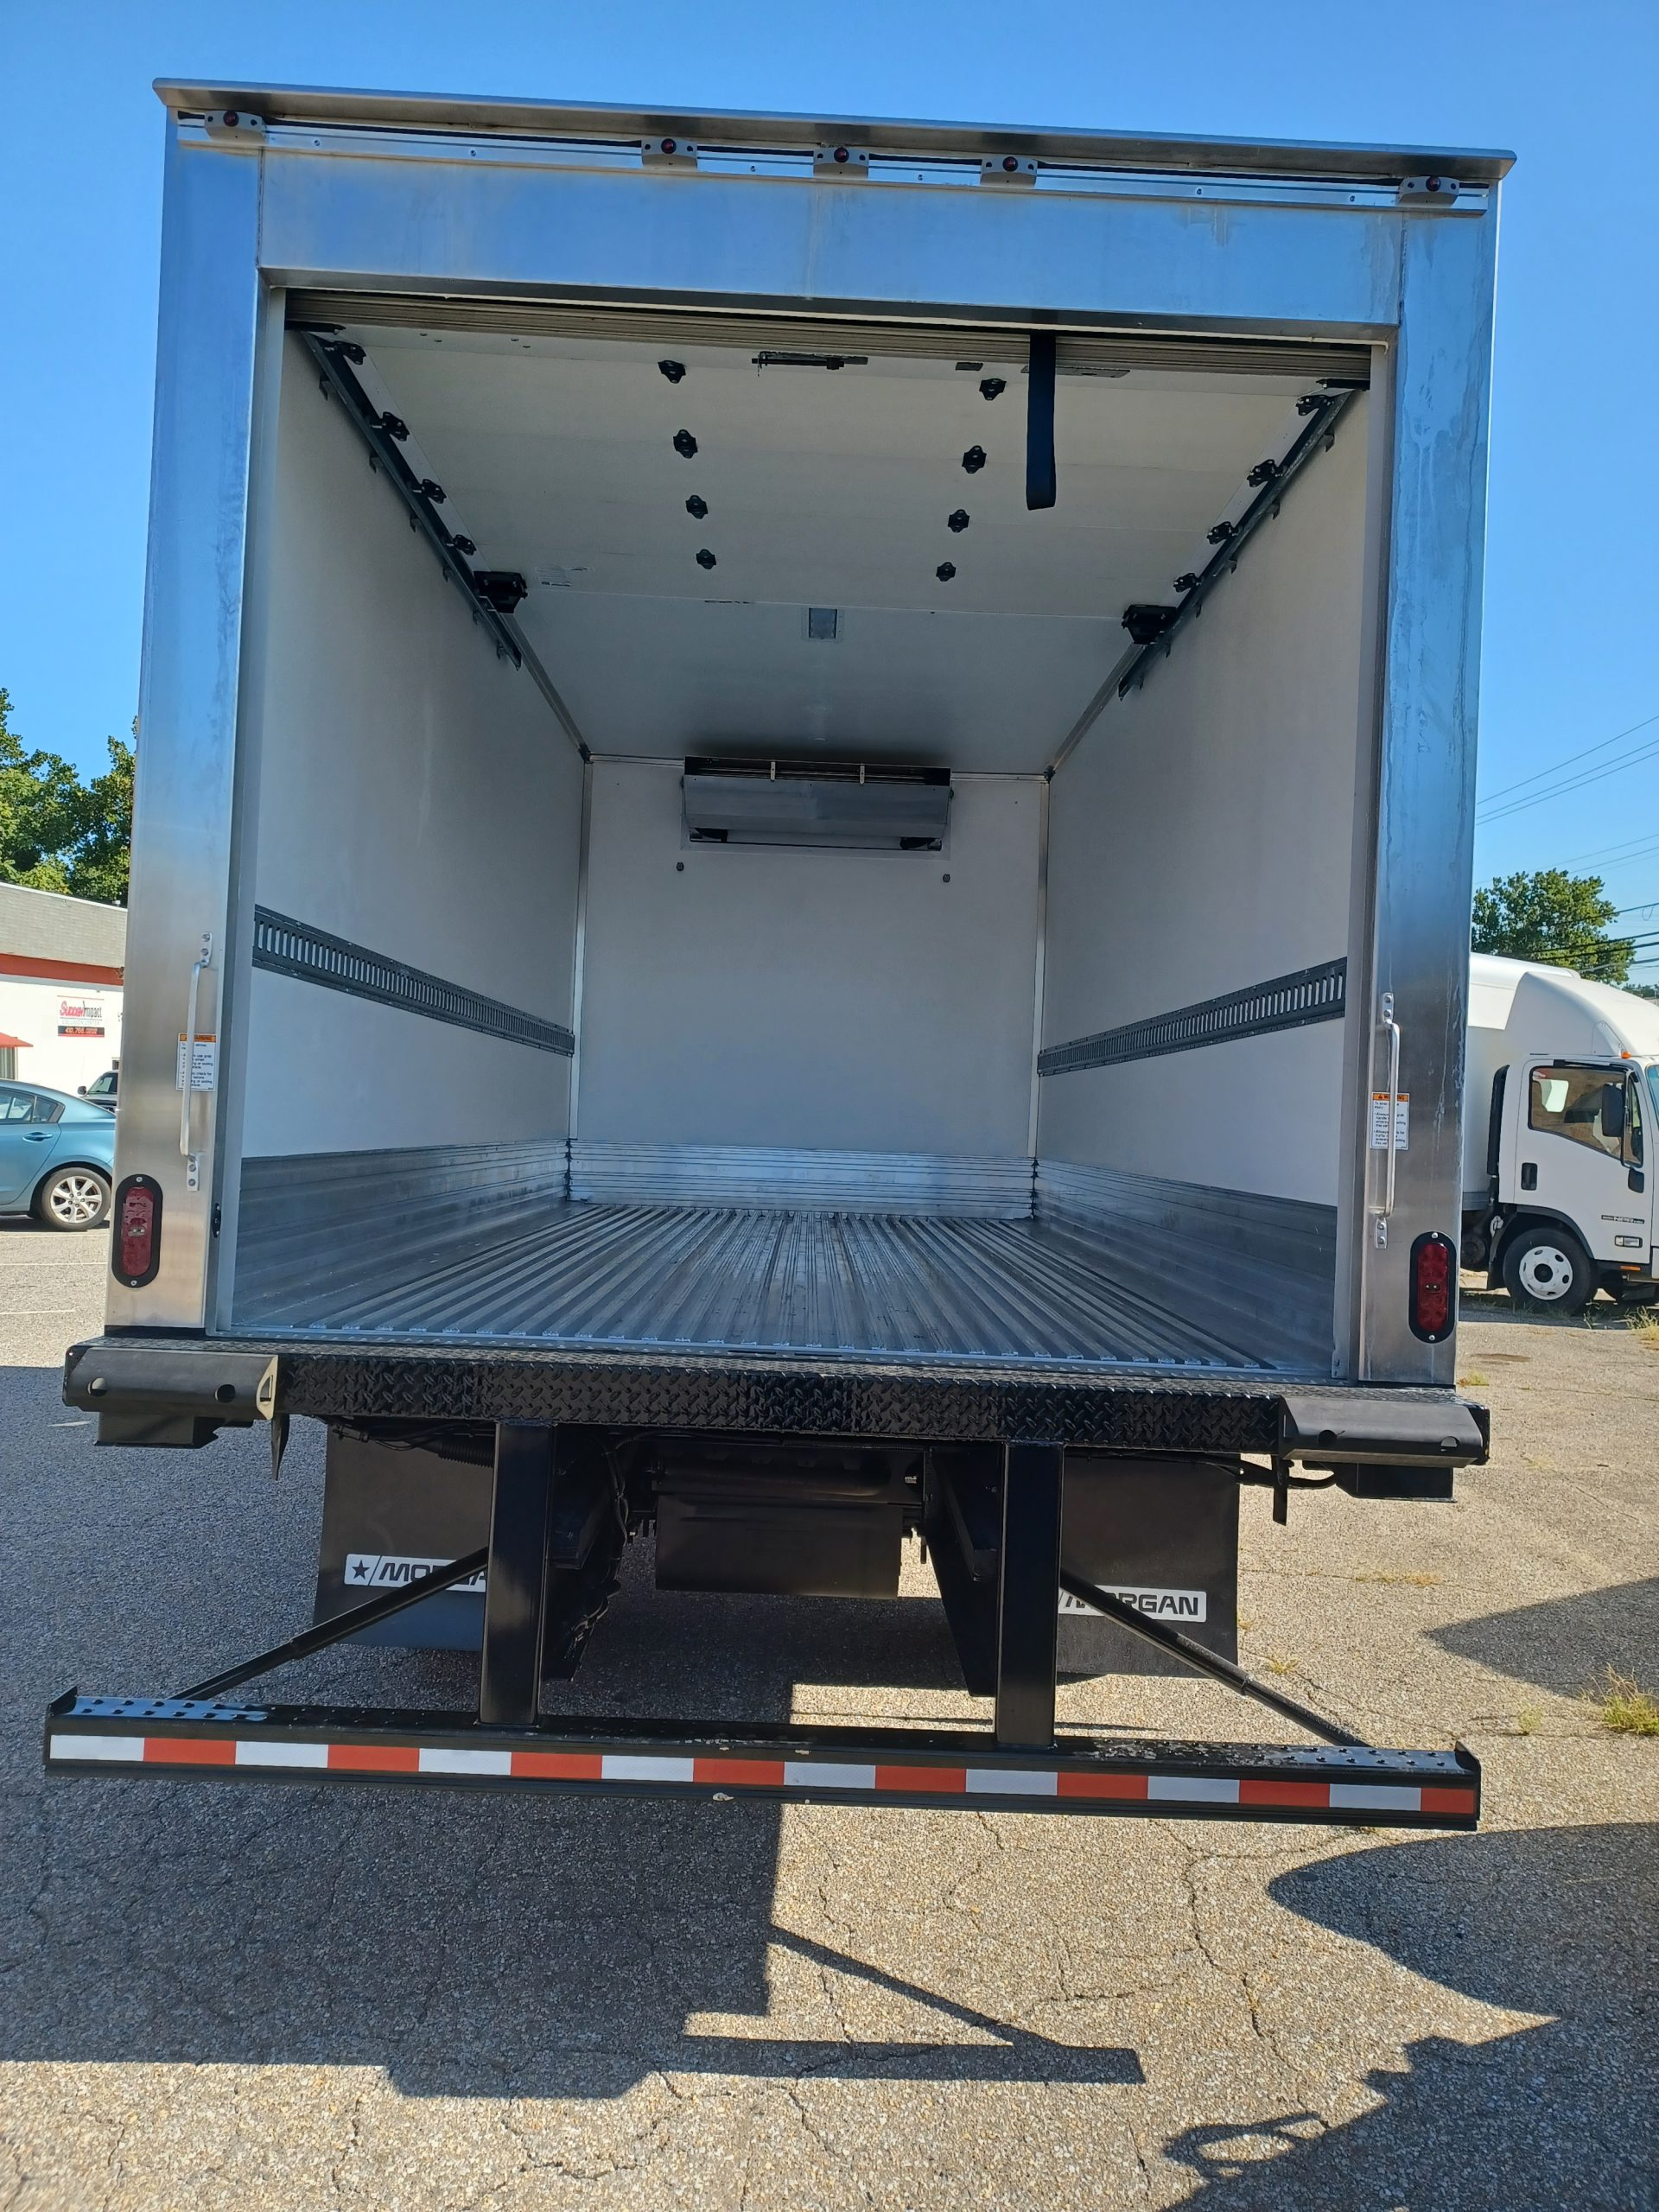 2022 NRR Refrigerated Truck Diesel 3 year Unlimited Mile Warranty 20210903_094550-scaled